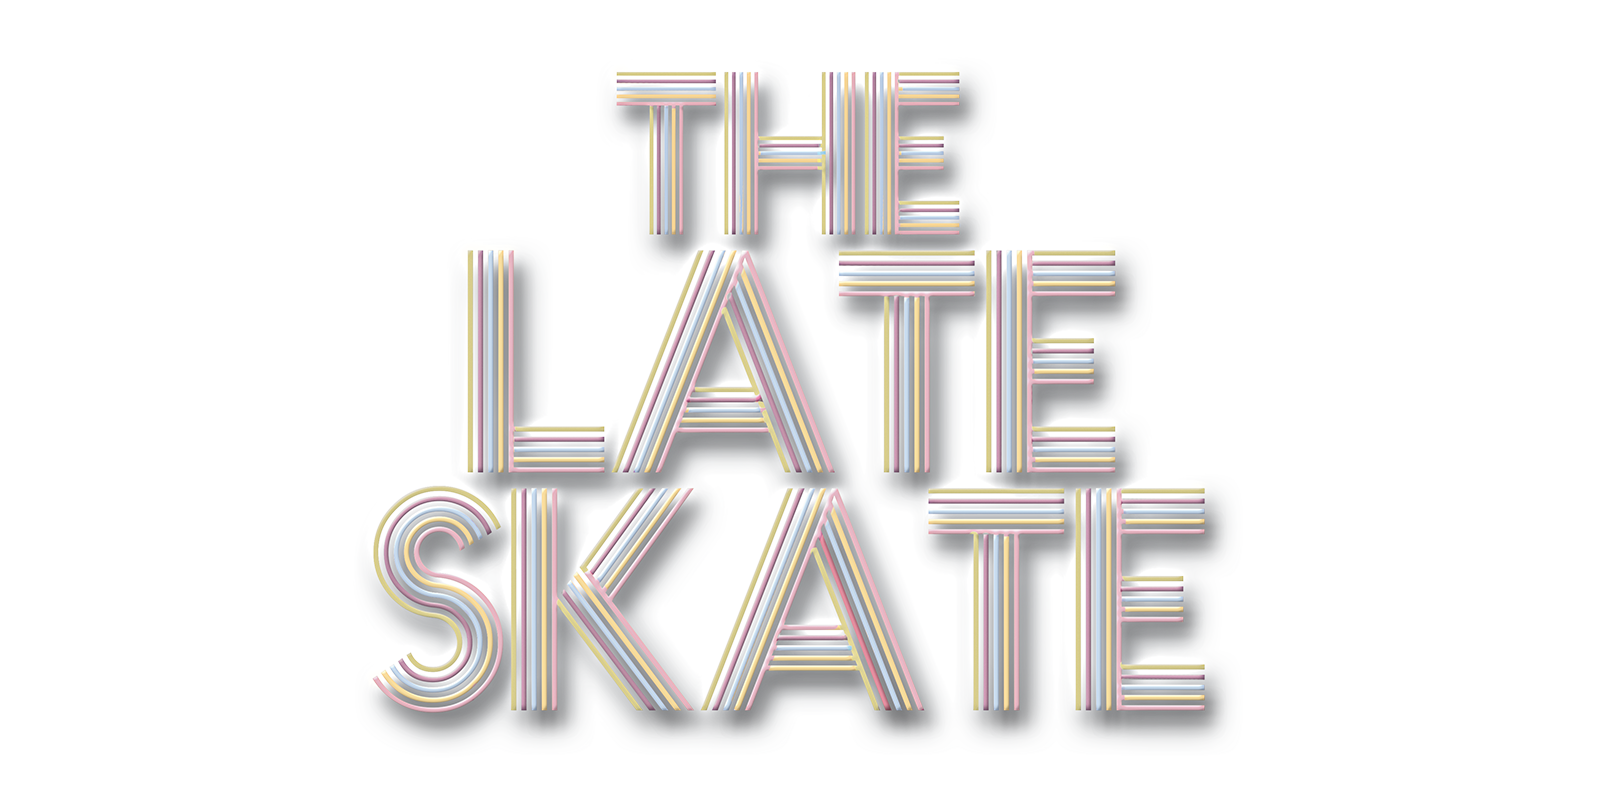 c.H.74.d3d.The-Late-Skate-On2.png